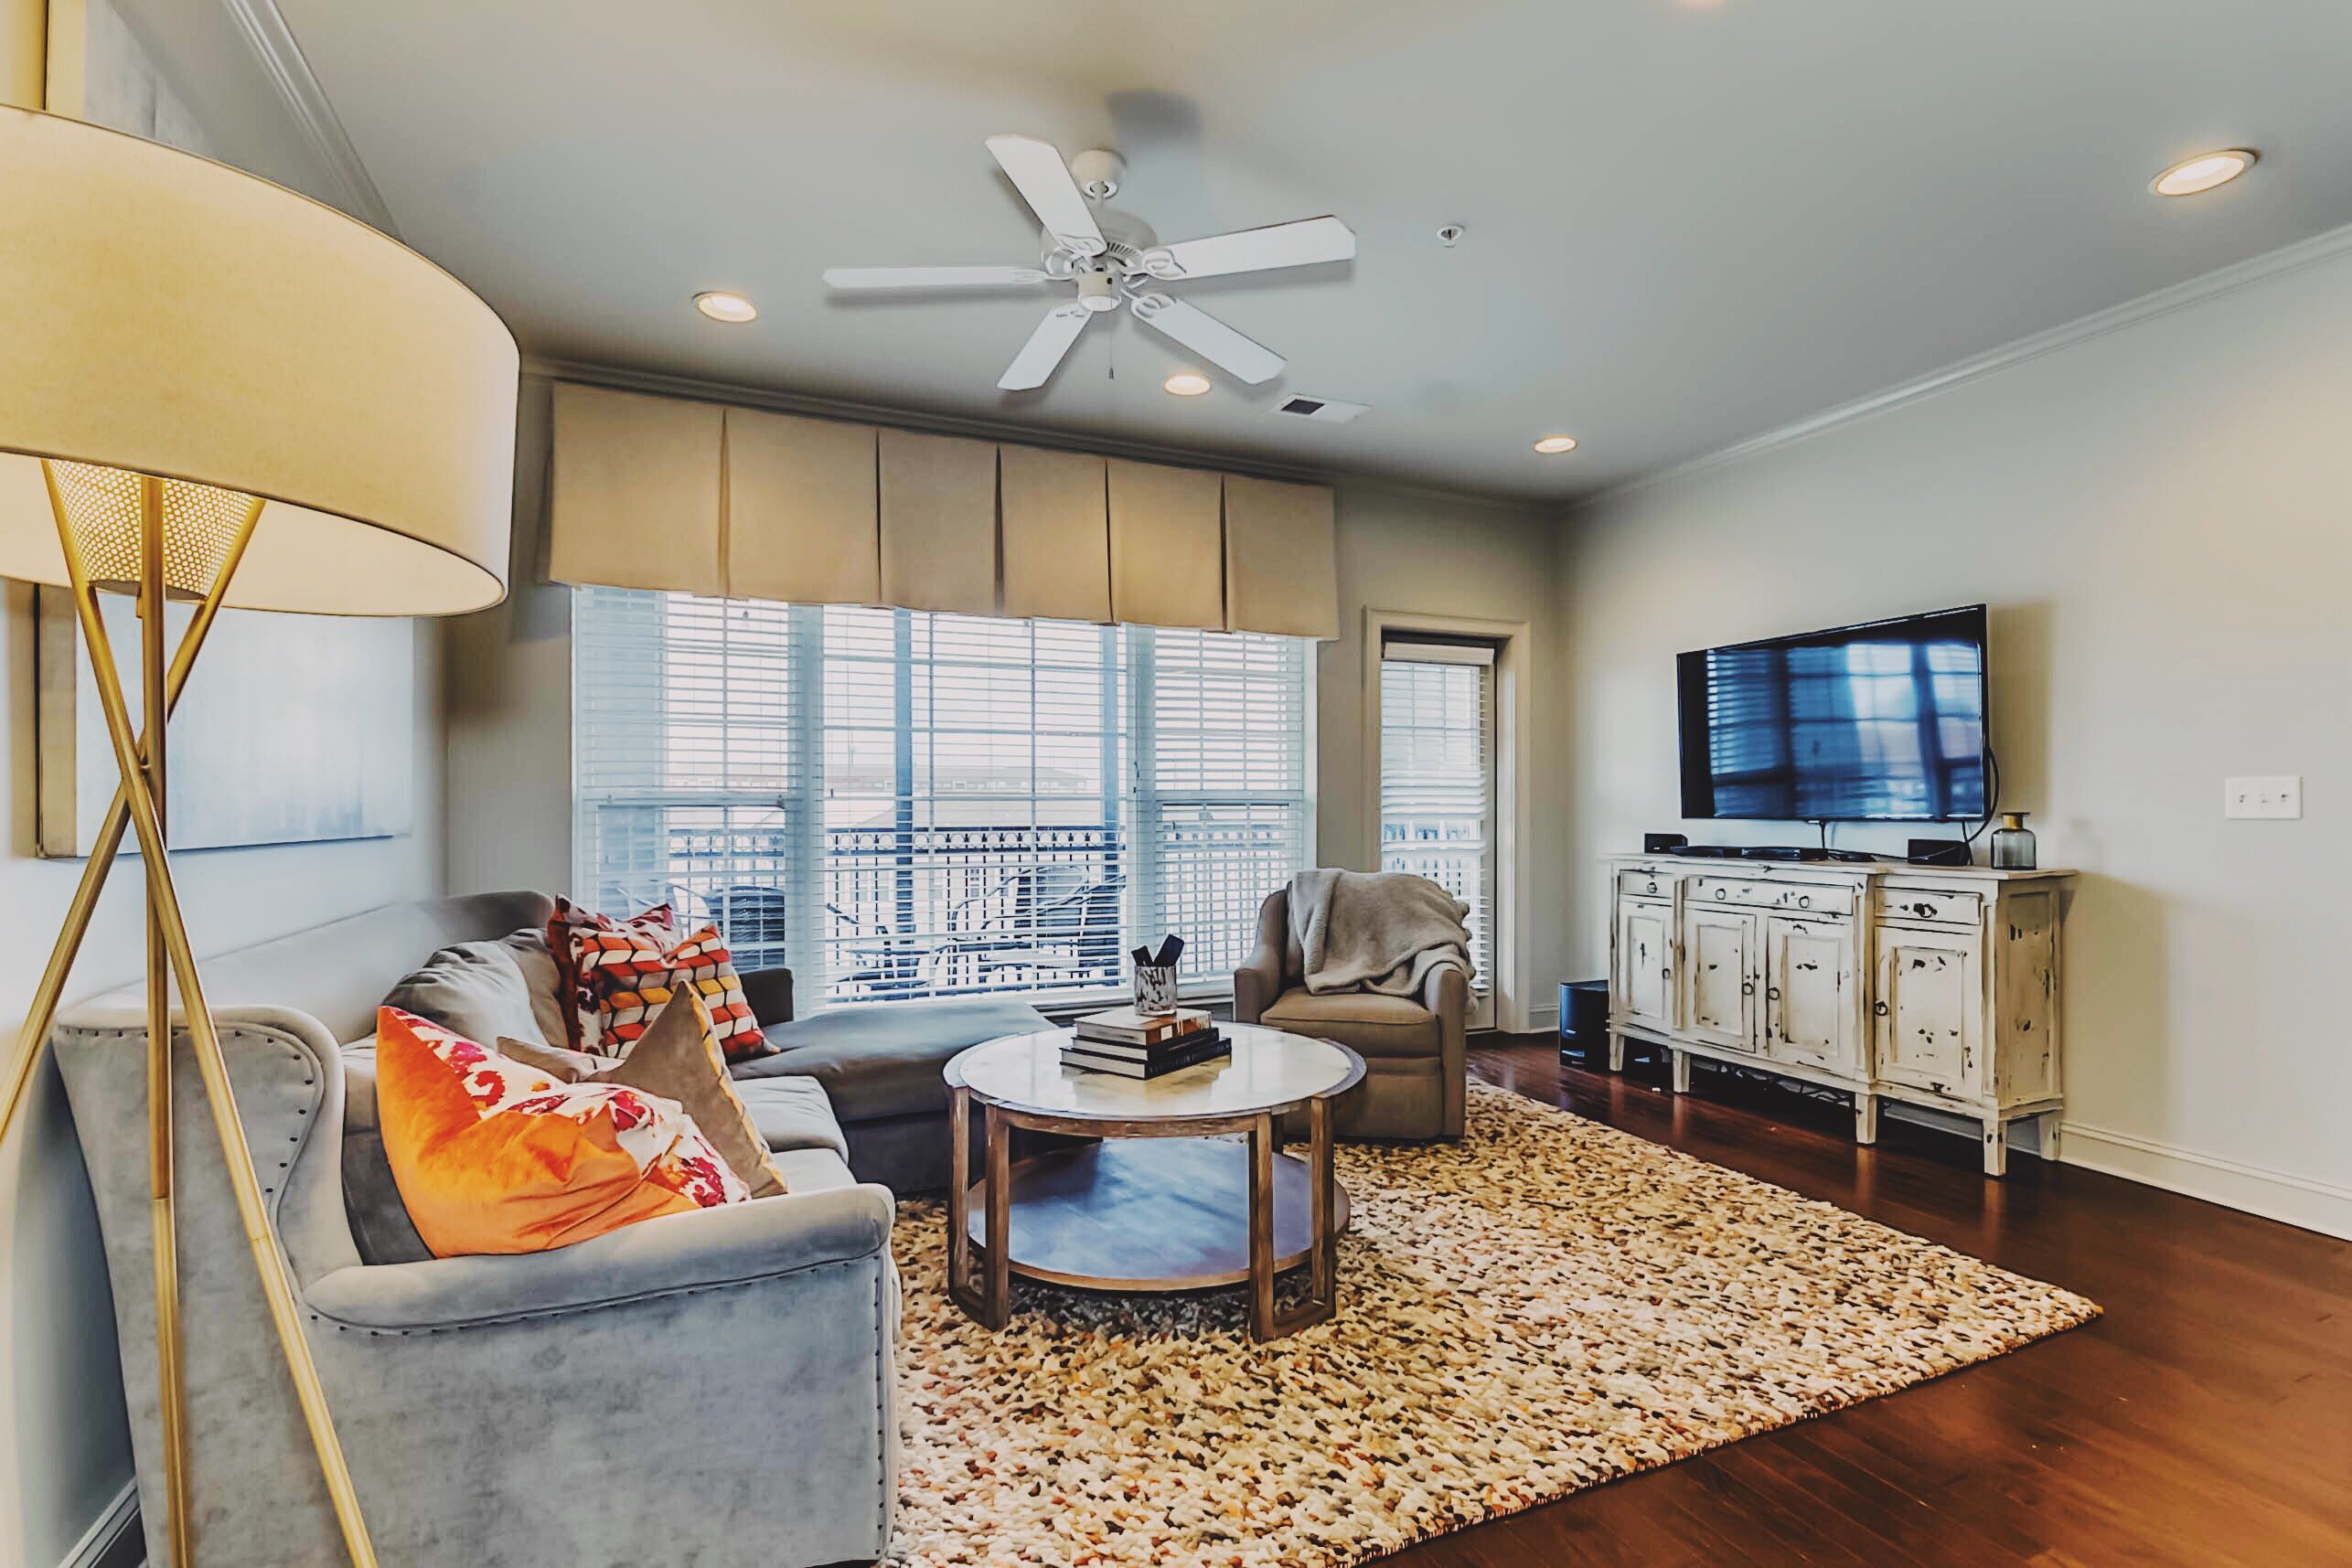 Top floor luxury condo for sale in Tuscaloosa near Bryant